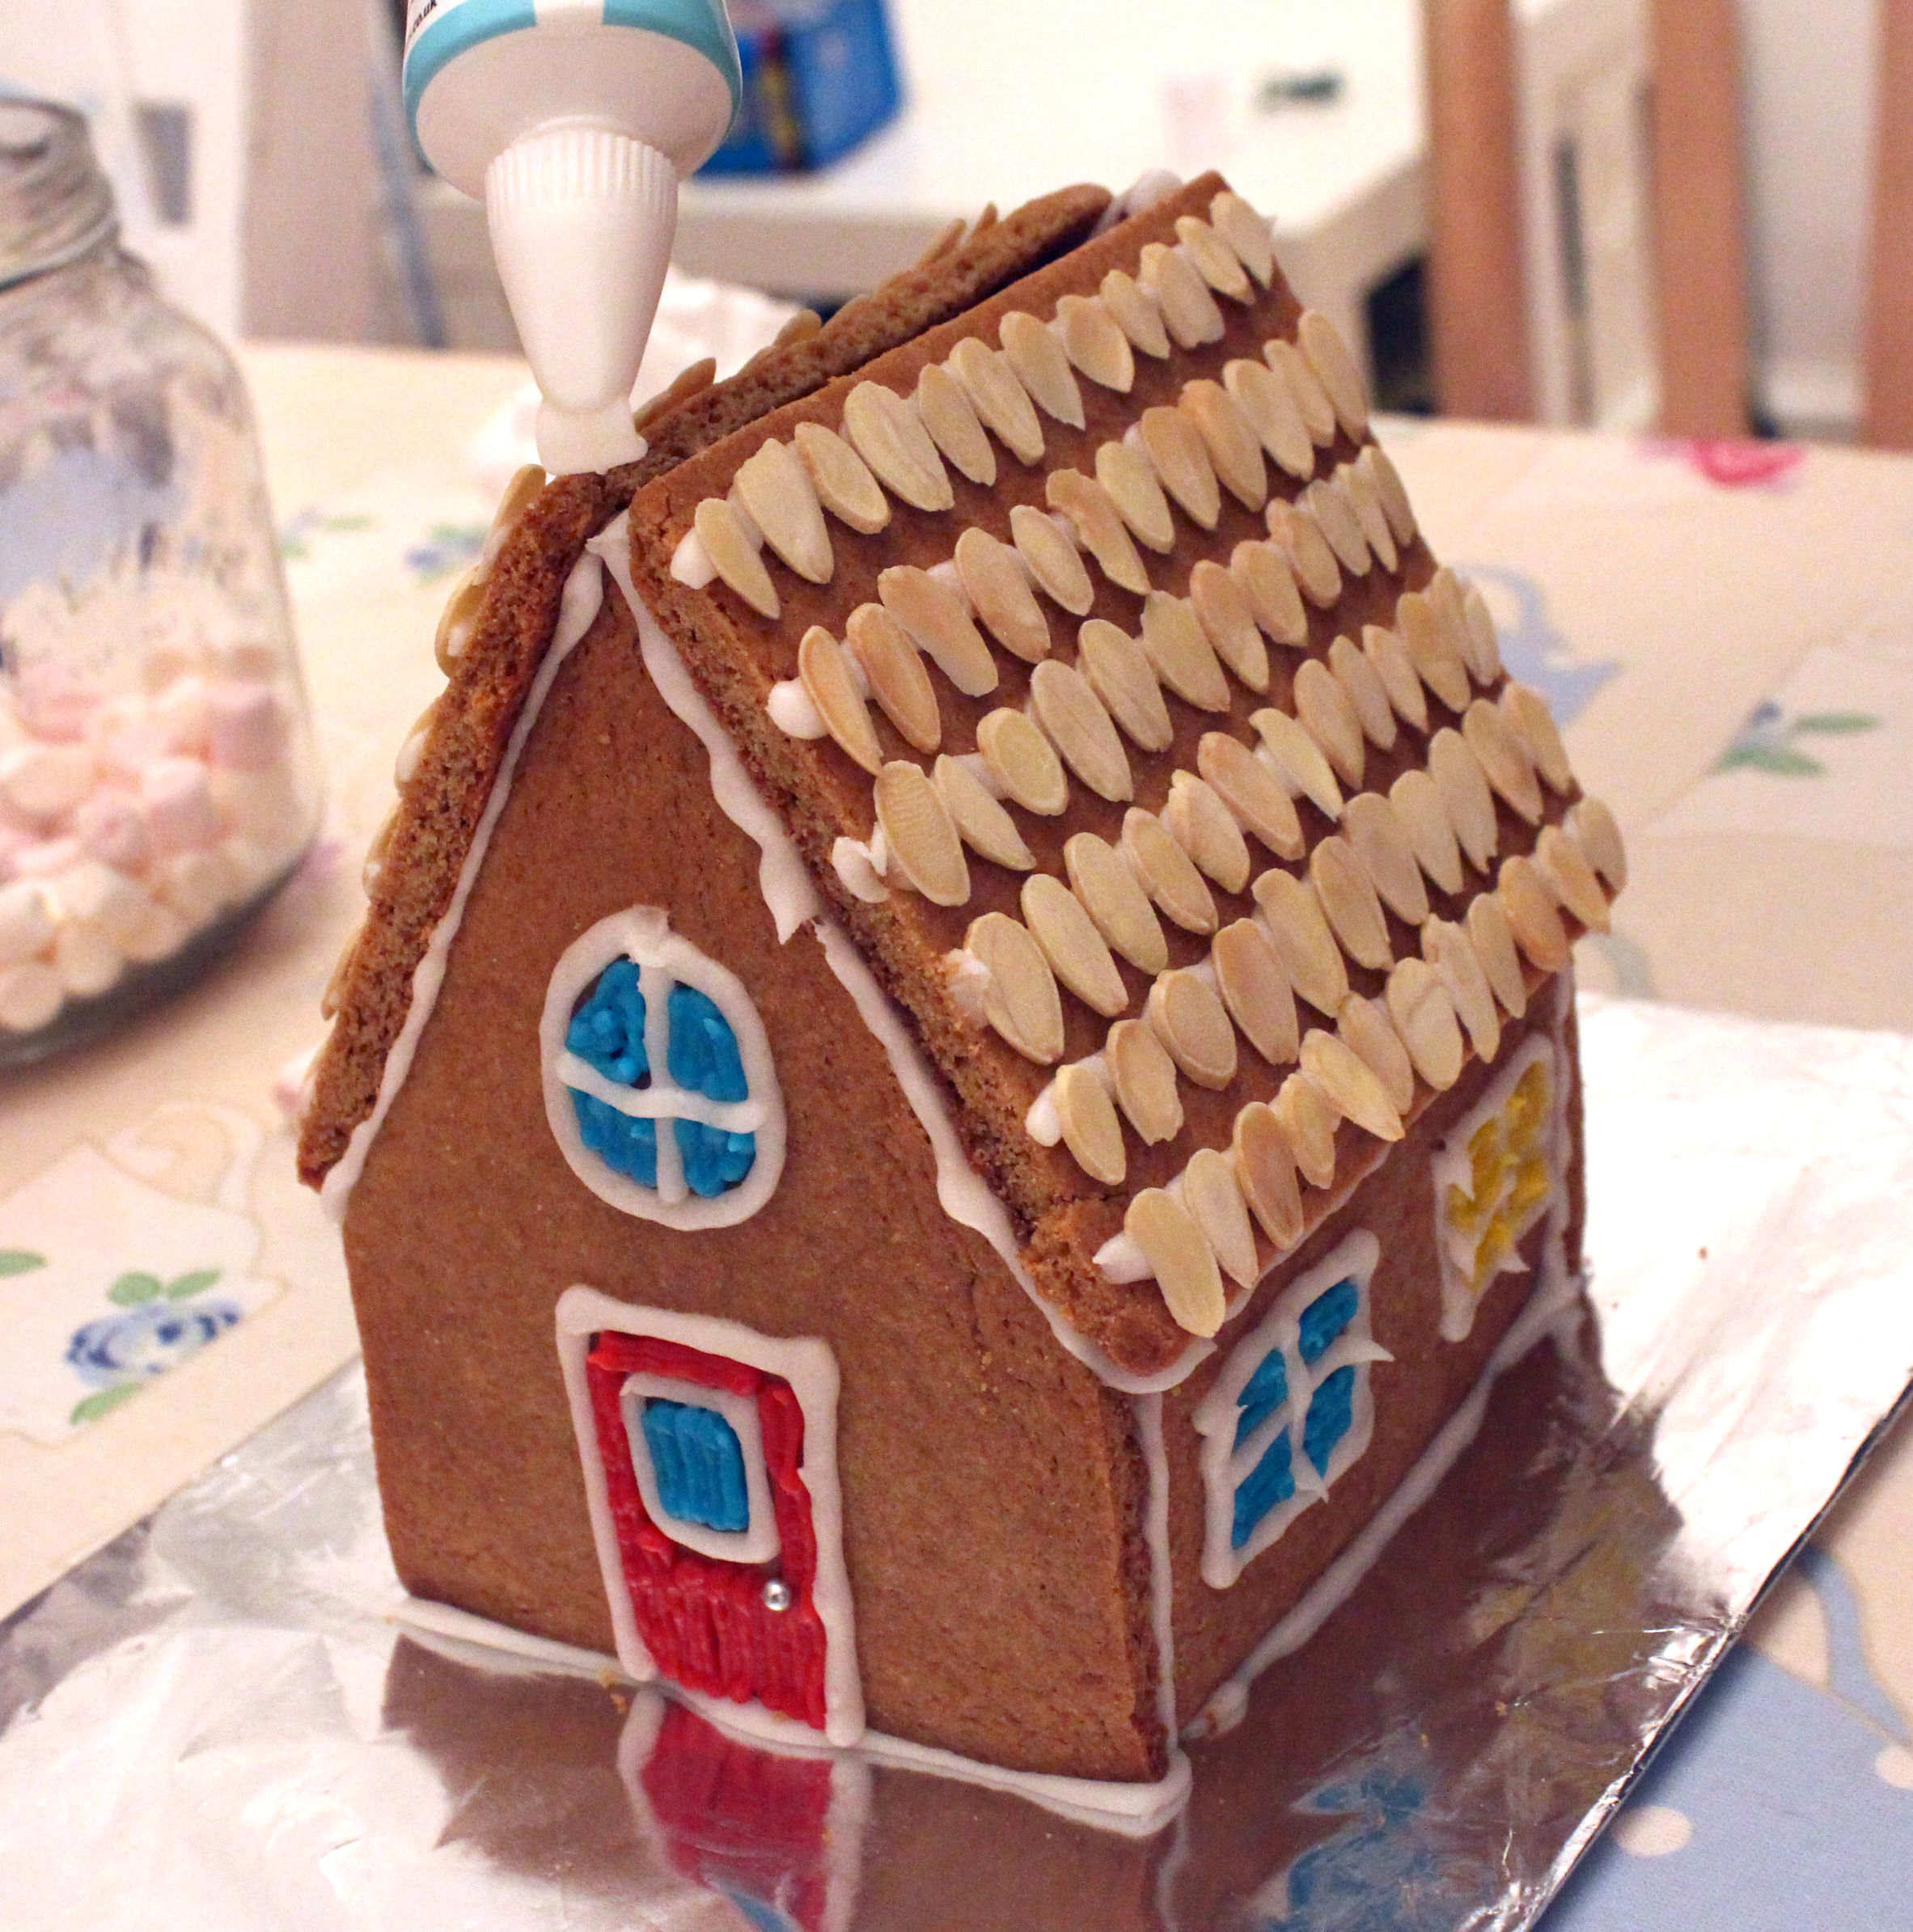 Homemade diy gingerbread house kit annie ko this will be a really amazing gift for all ages and we had fun making the house panels the box and eventually the house solutioingenieria Choice Image